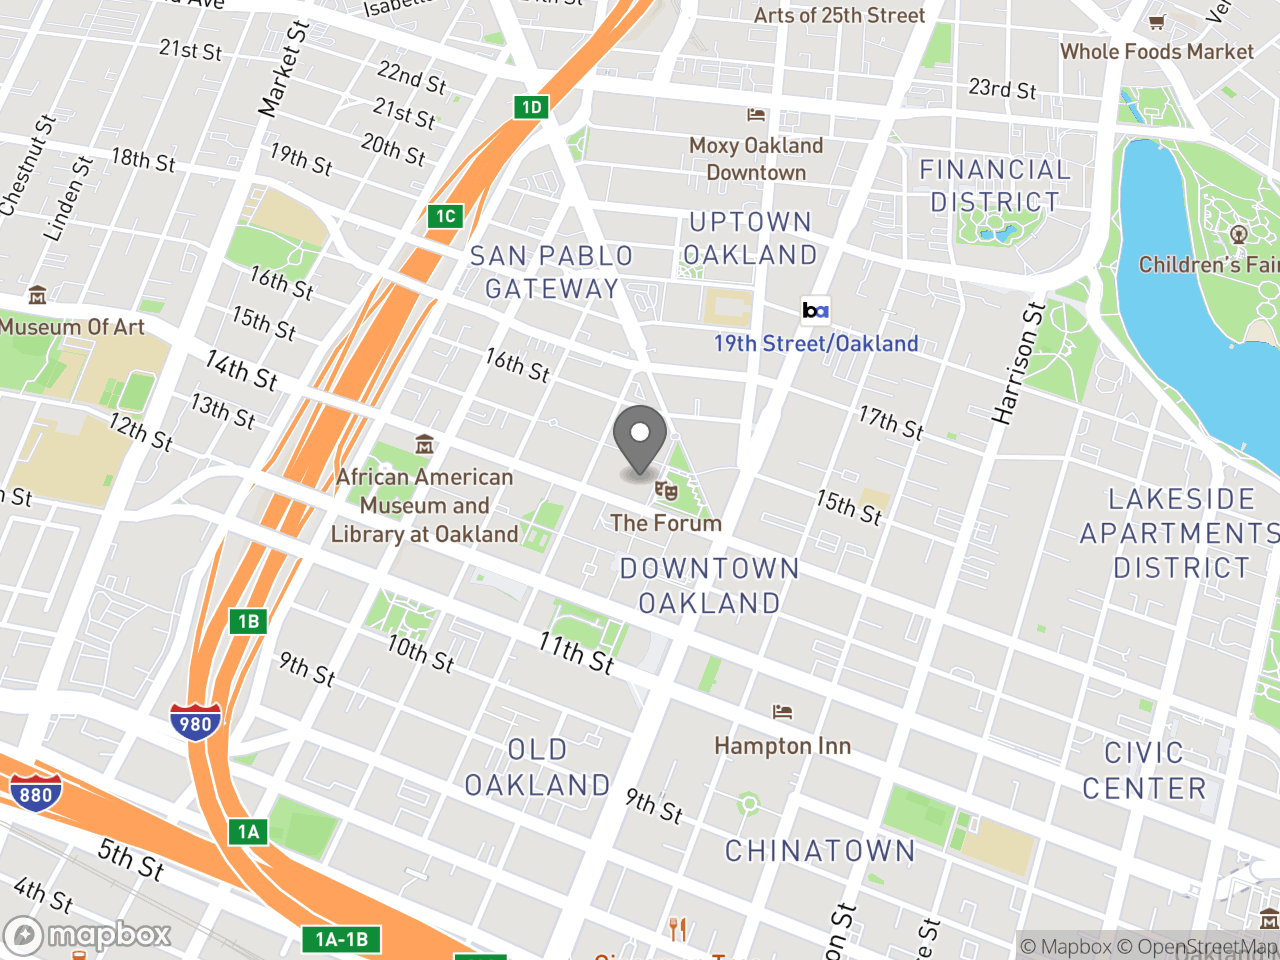 Map image for October 24, 2018 Design Review Committee Meeting, located at 1 Frank H Ogawa Plaza in Oakland, CA 94612